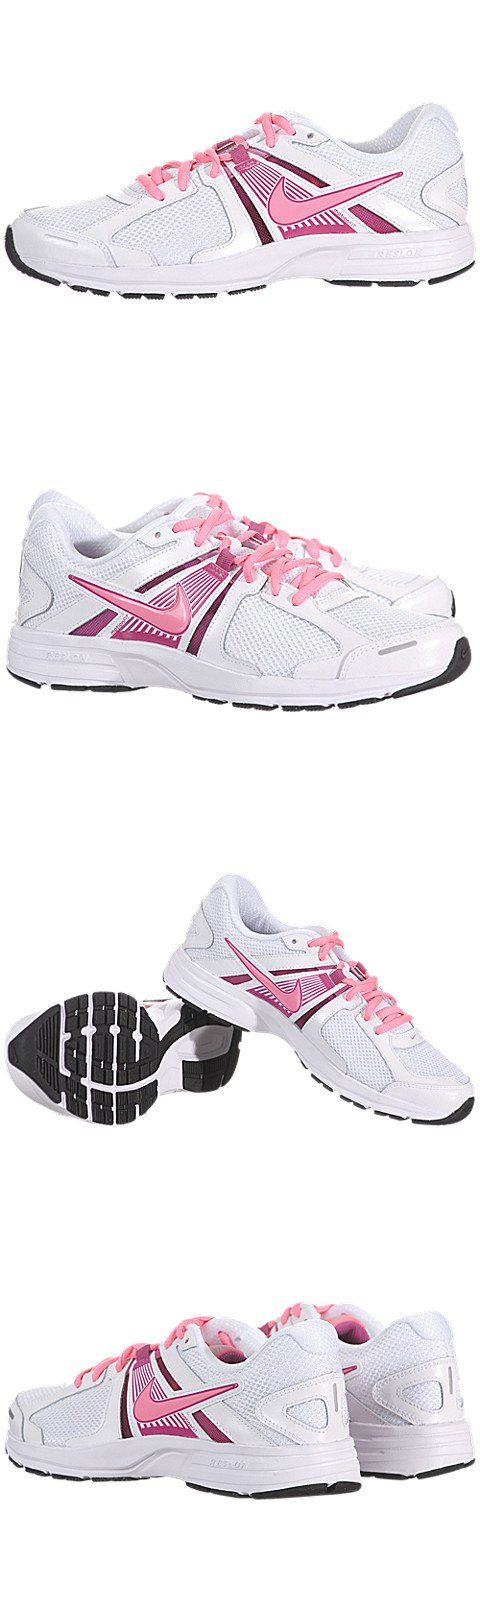 Nike Dart 10 White/Pink Ladies Running Shoes - Nike Women's Dart 10 Running I just got these ^_^